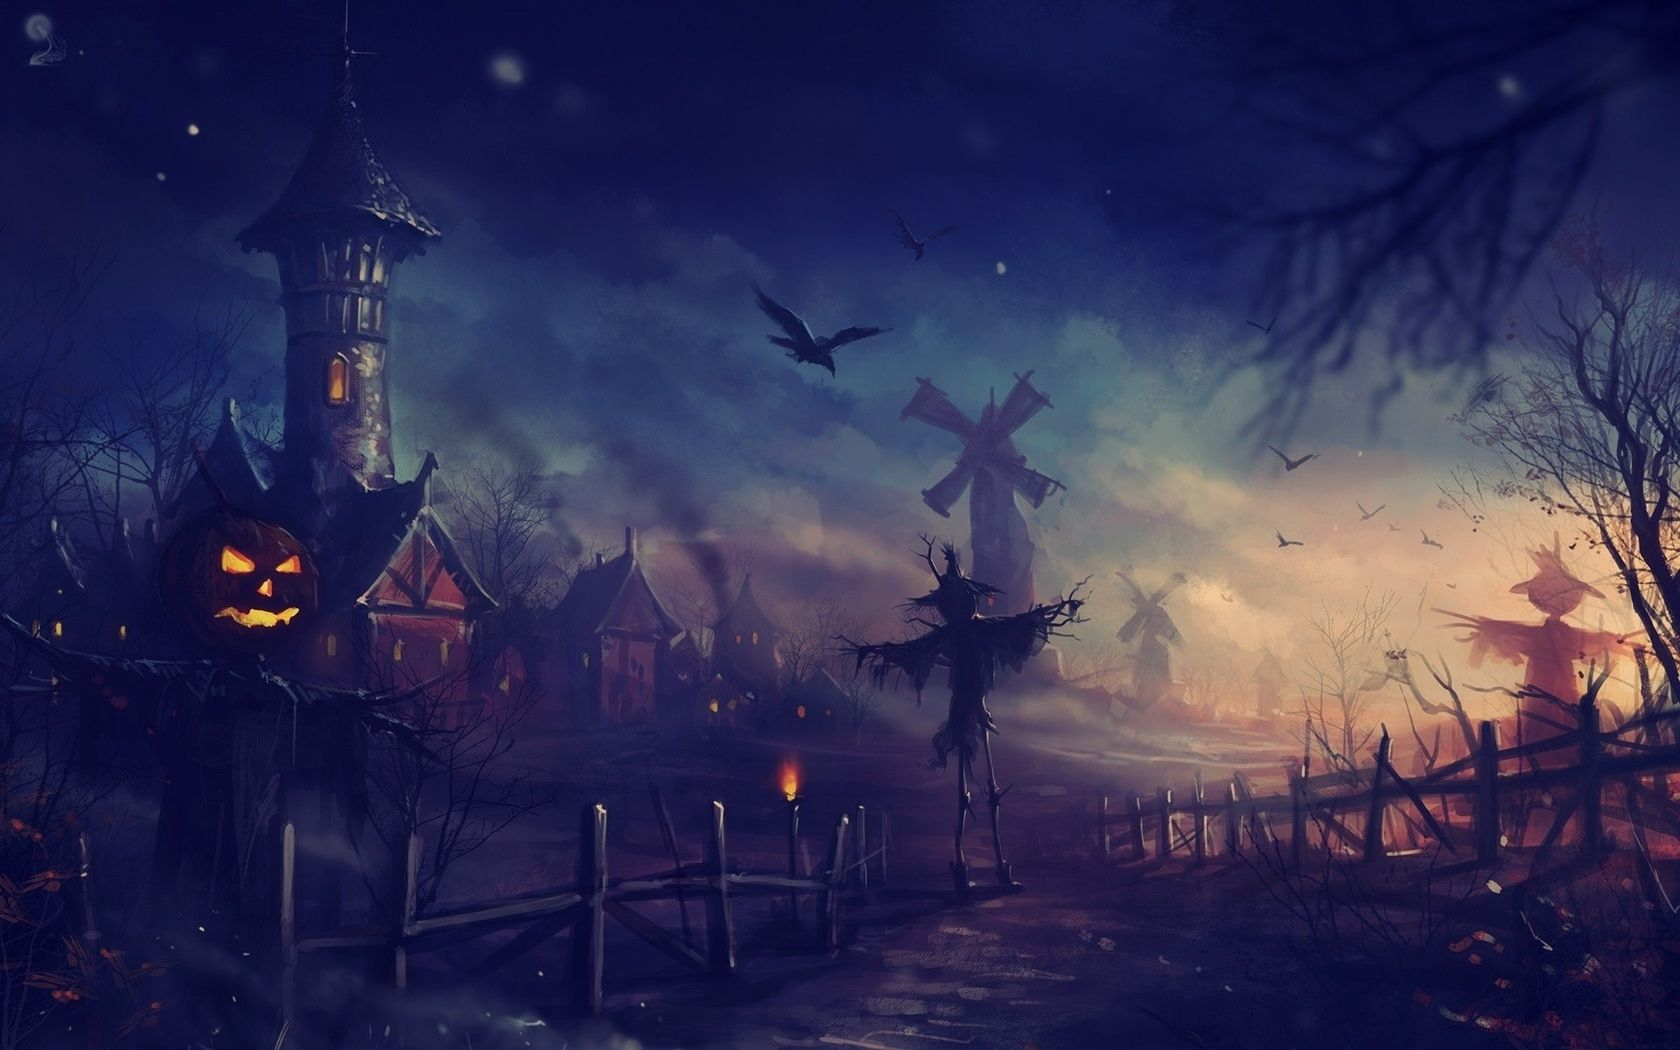 11 Non Scary Halloween Movies Halloween Wallpaper Halloween Pictures Halloween Facebook Cover